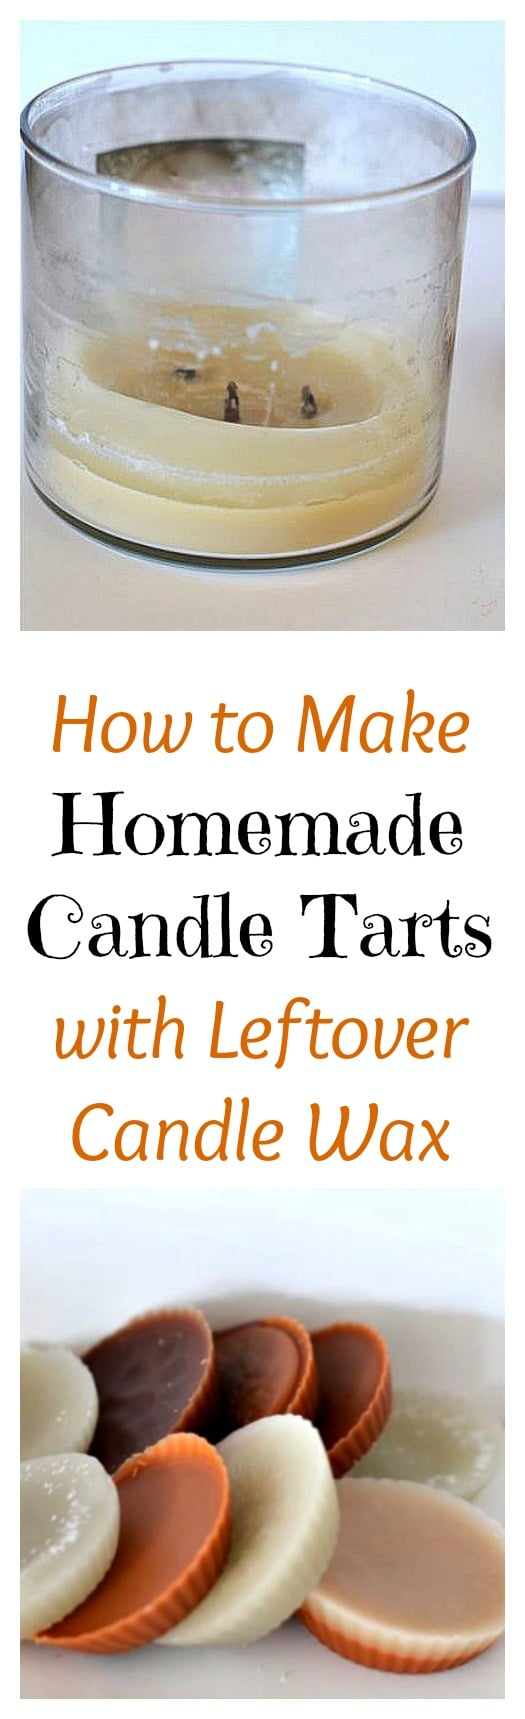 Stop throwing your hard earned money away! Don't toss out the wax after a candle's wick has come to an end, instead learn how to make homemade candles...well homemade candle tarts.